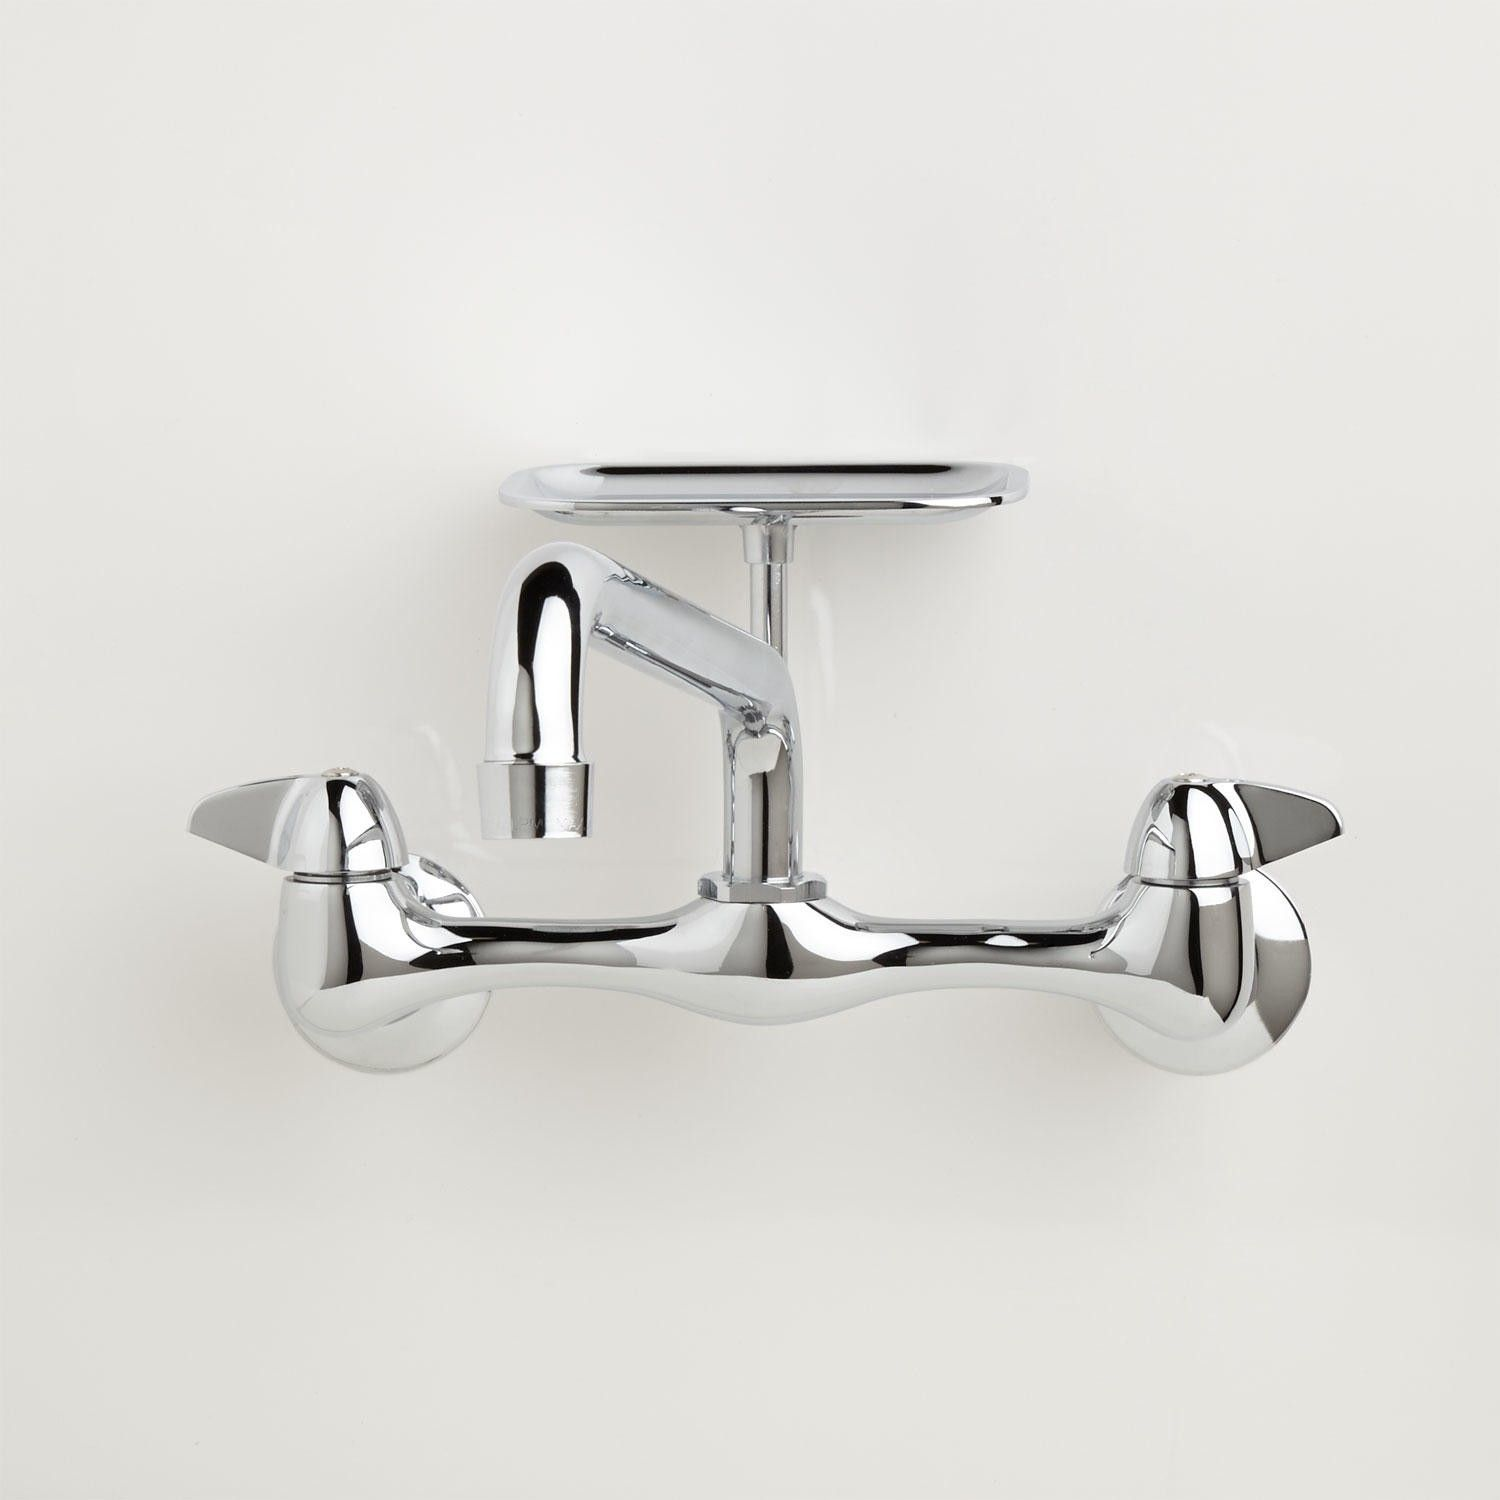 Wall Mount Sink Faucet With Soap Tray Chrome Adjustable